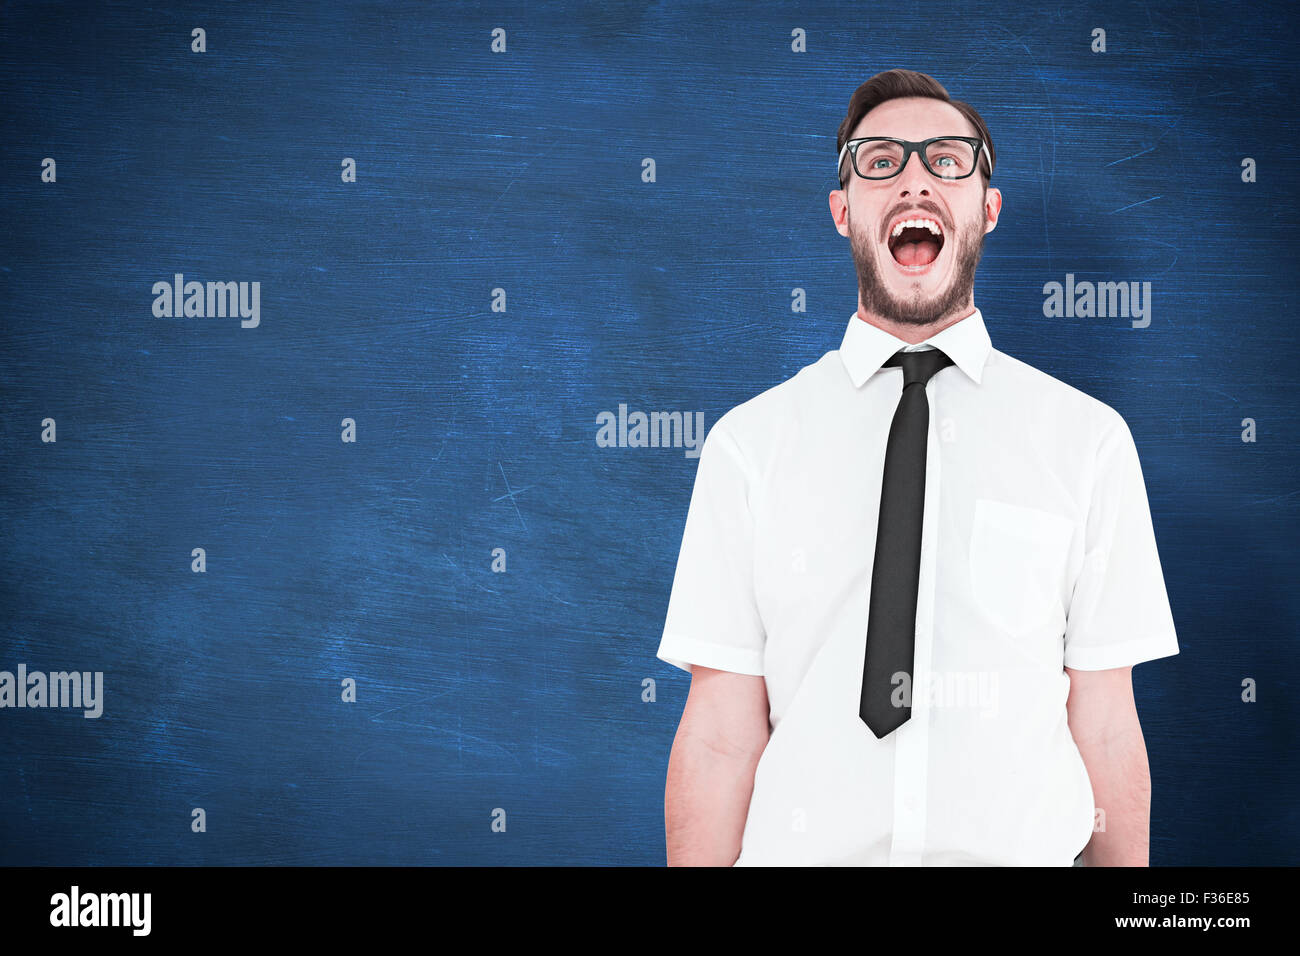 Composite image of geeky young businessman shouting loudly - Stock Image